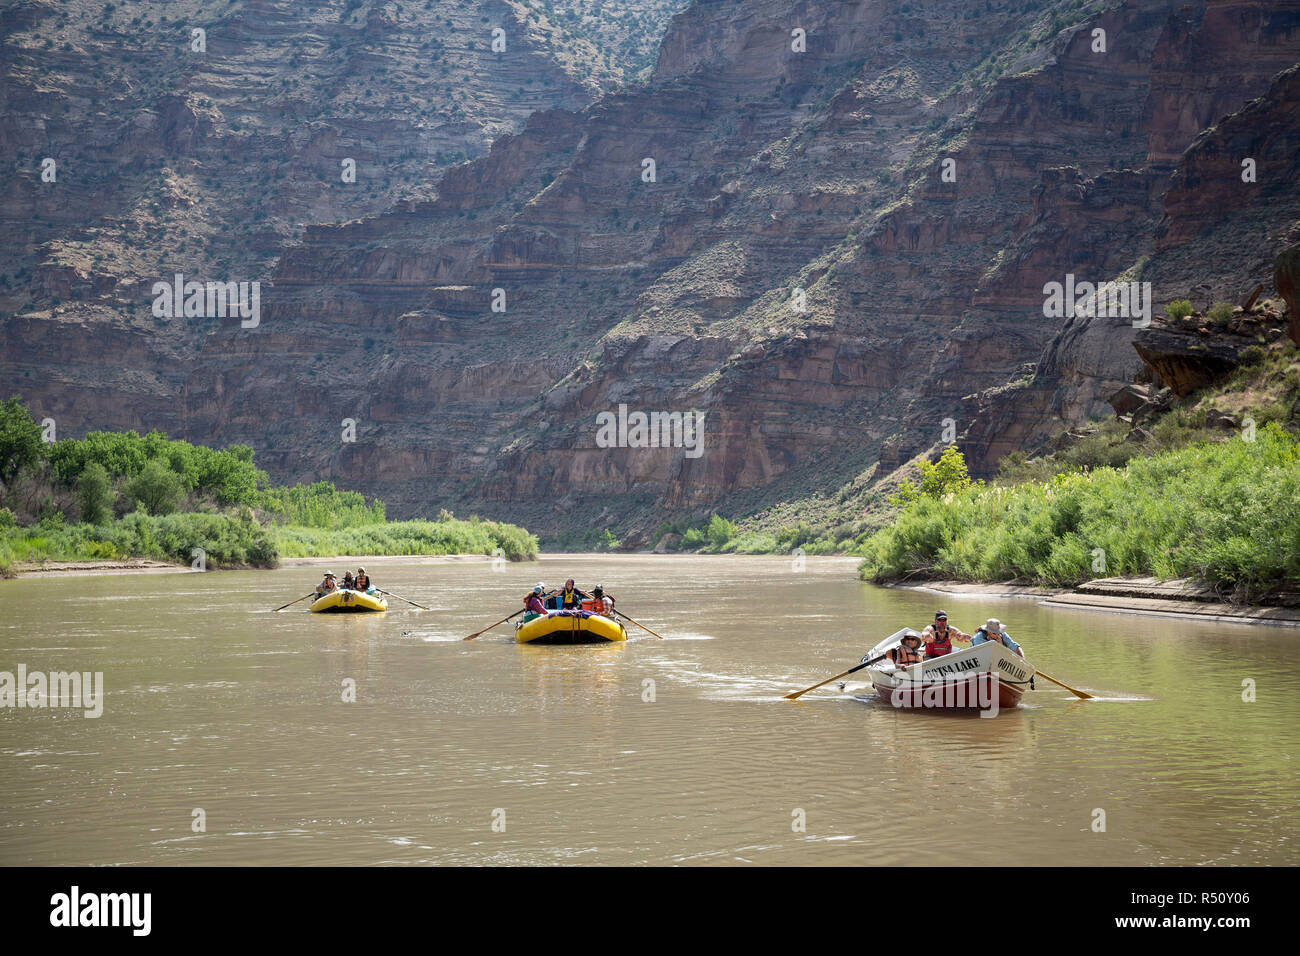 People in rafts and rowboats on Green River on Desolation/Gray Canyon section, Utah, USA - Stock Image